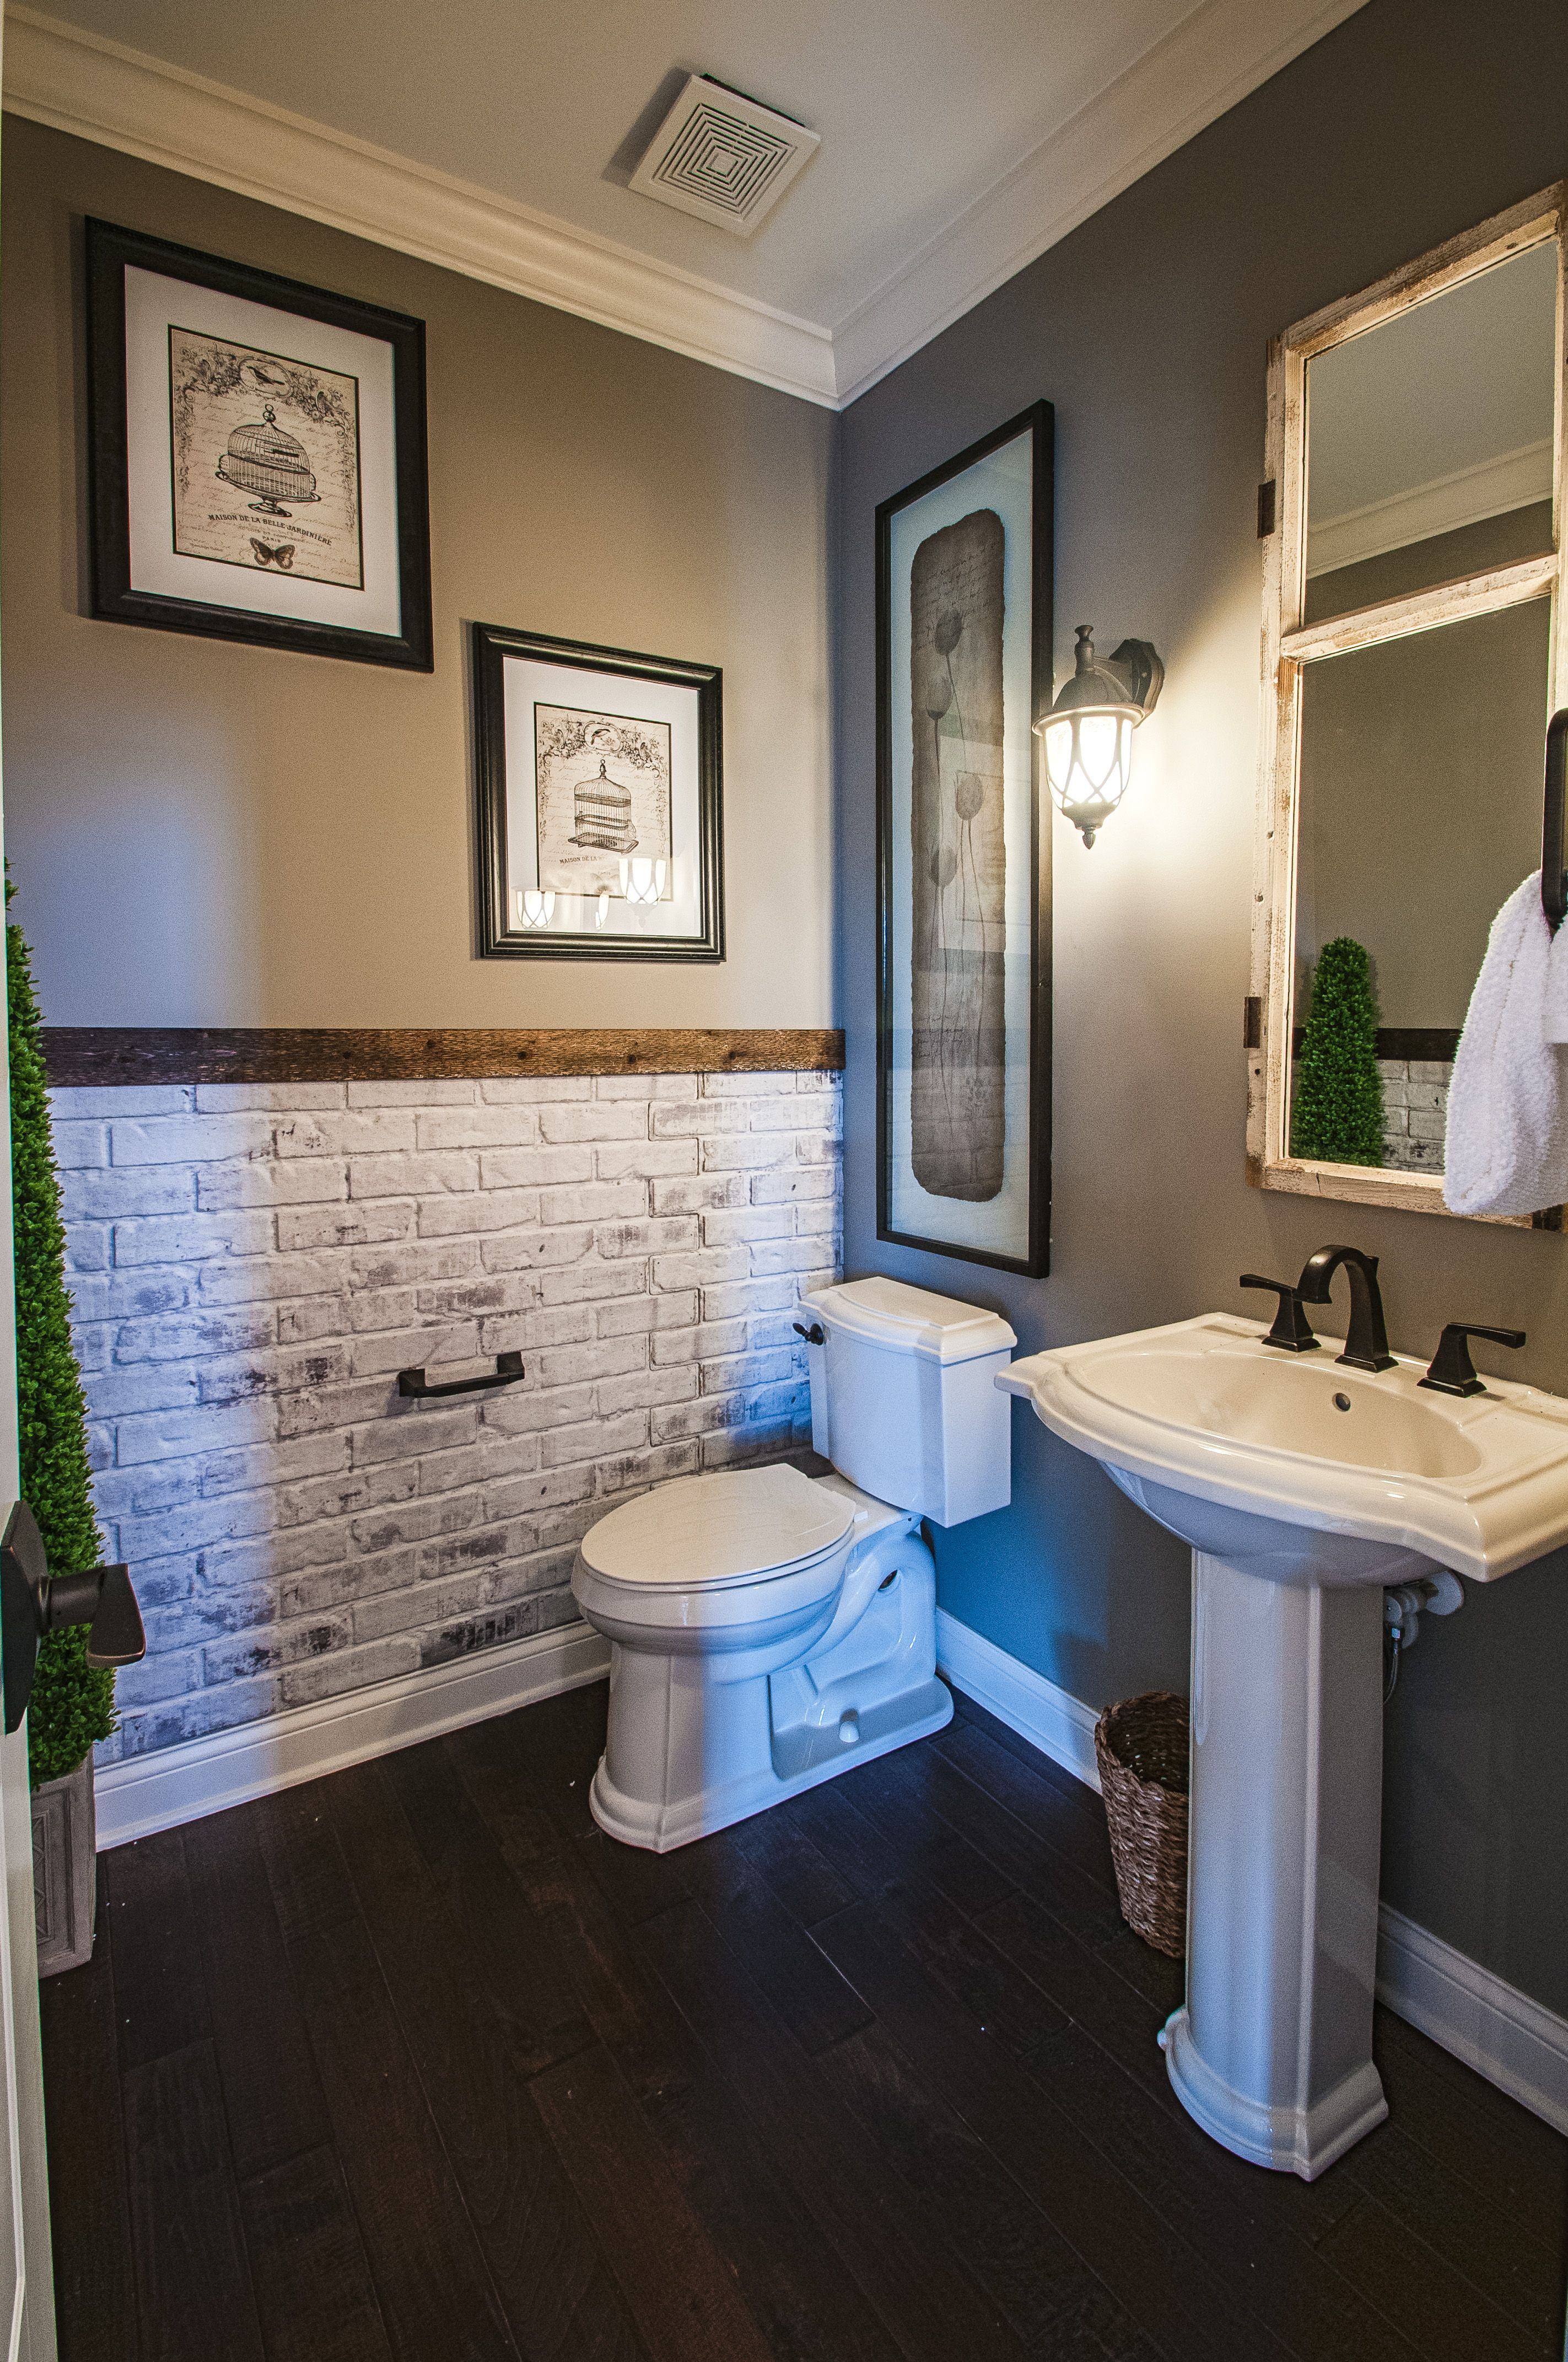 A Brick Accent Wall Crown Molding And Pedestal Sink Will Make